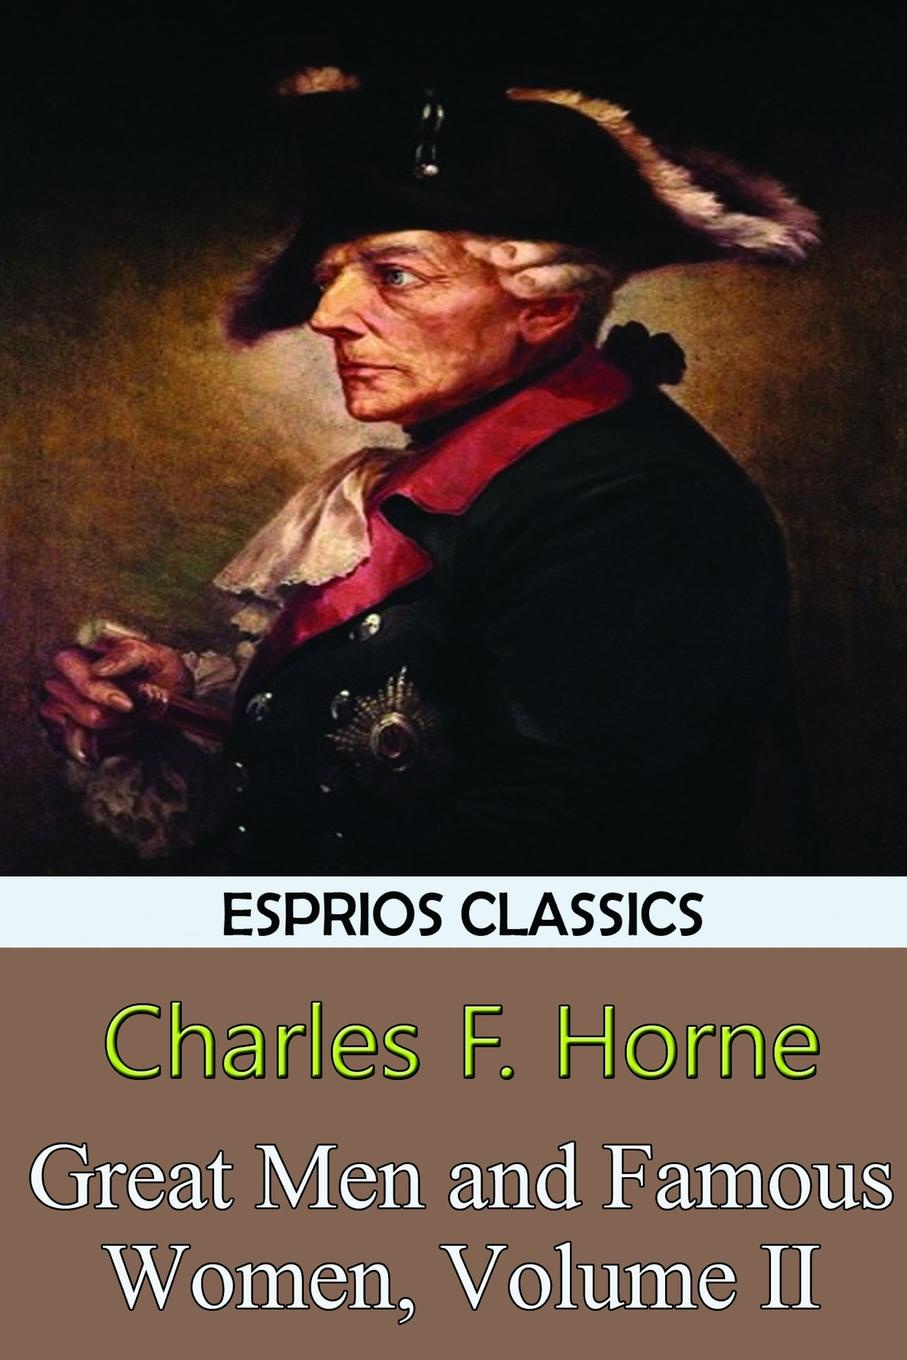 Charles F. Horne Great Men and Famous Women, Volume II (Esprios Classics) hadley milton stories about famous men and women of our great country containing the lives of almost fifty of our nations heroes and heroines